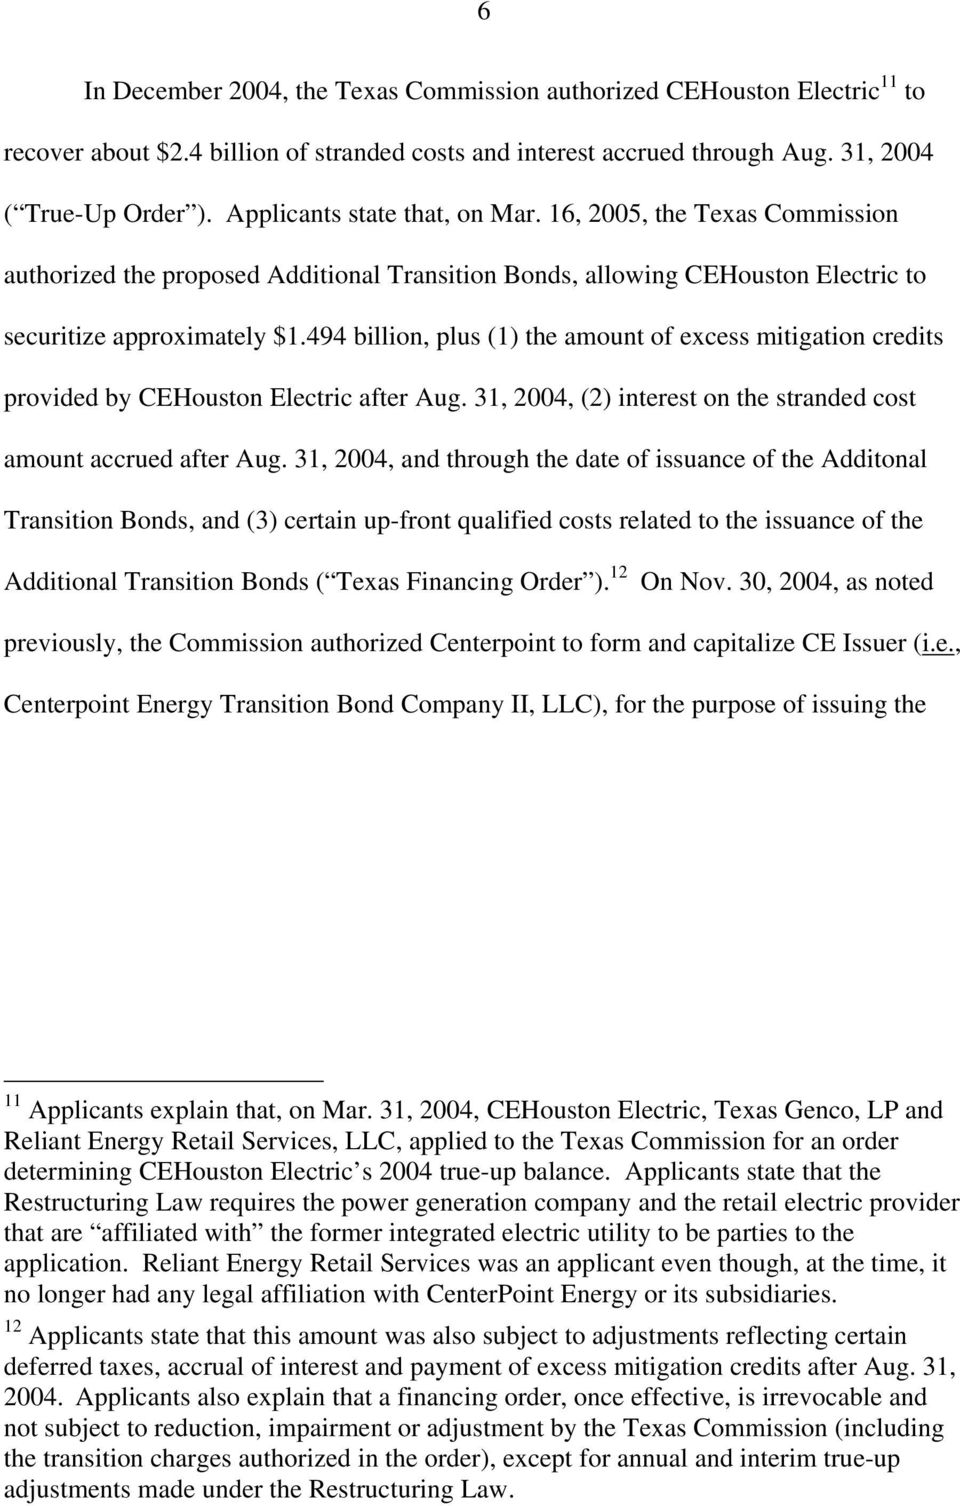 494 billion, plus (1) the amount of excess mitigation credits provided by CEHouston Electric after Aug. 31, 2004, (2) interest on the stranded cost amount accrued after Aug.